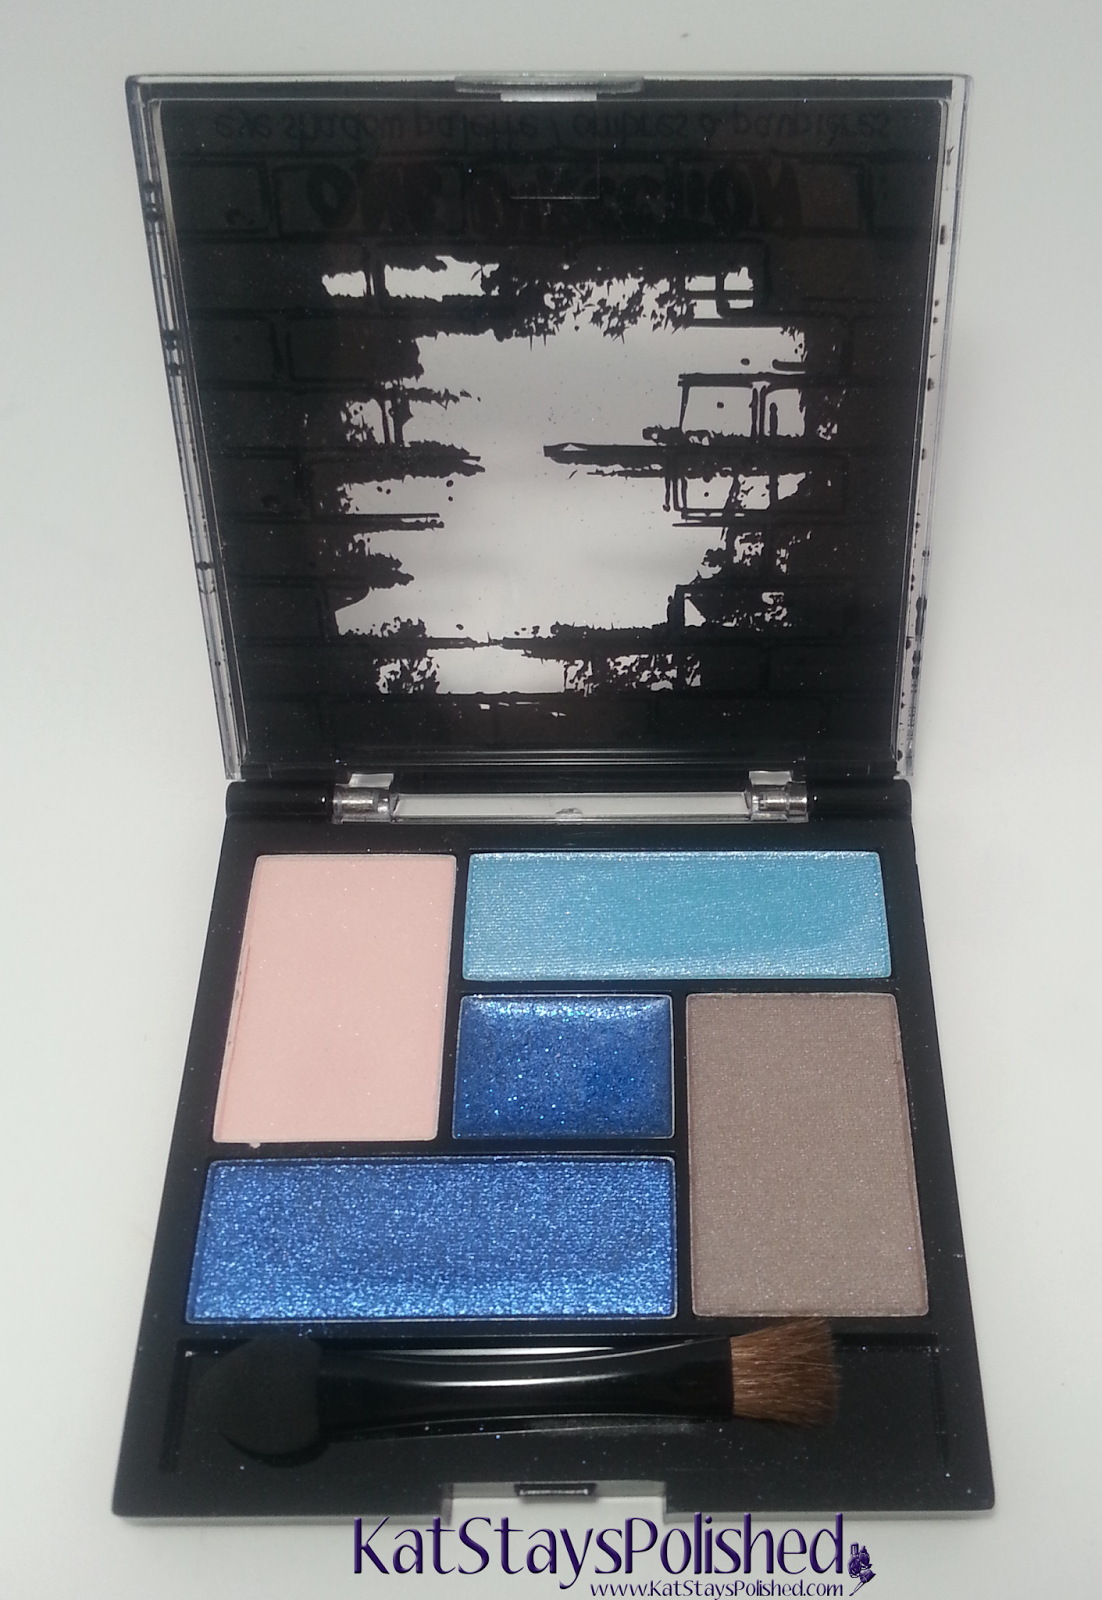 Make Up by One Direction - 4 + 1 Eye Shadow Palette | Kat Stays Polished